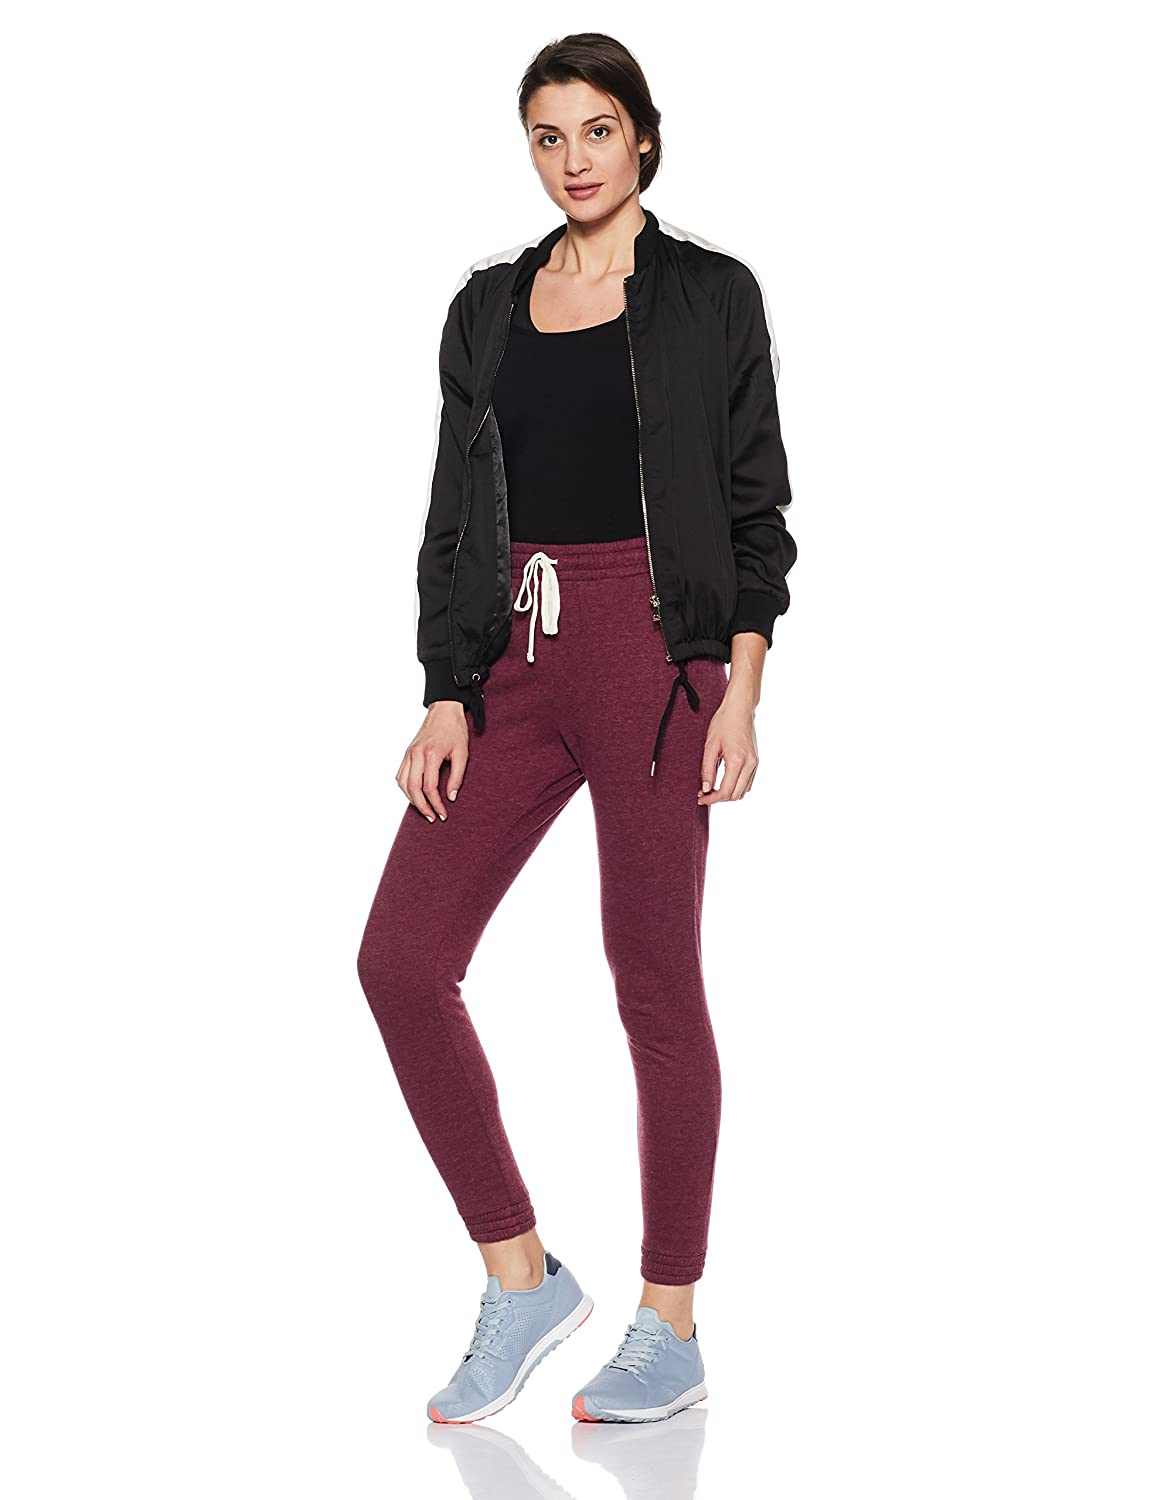 Forever 21 track pants for women